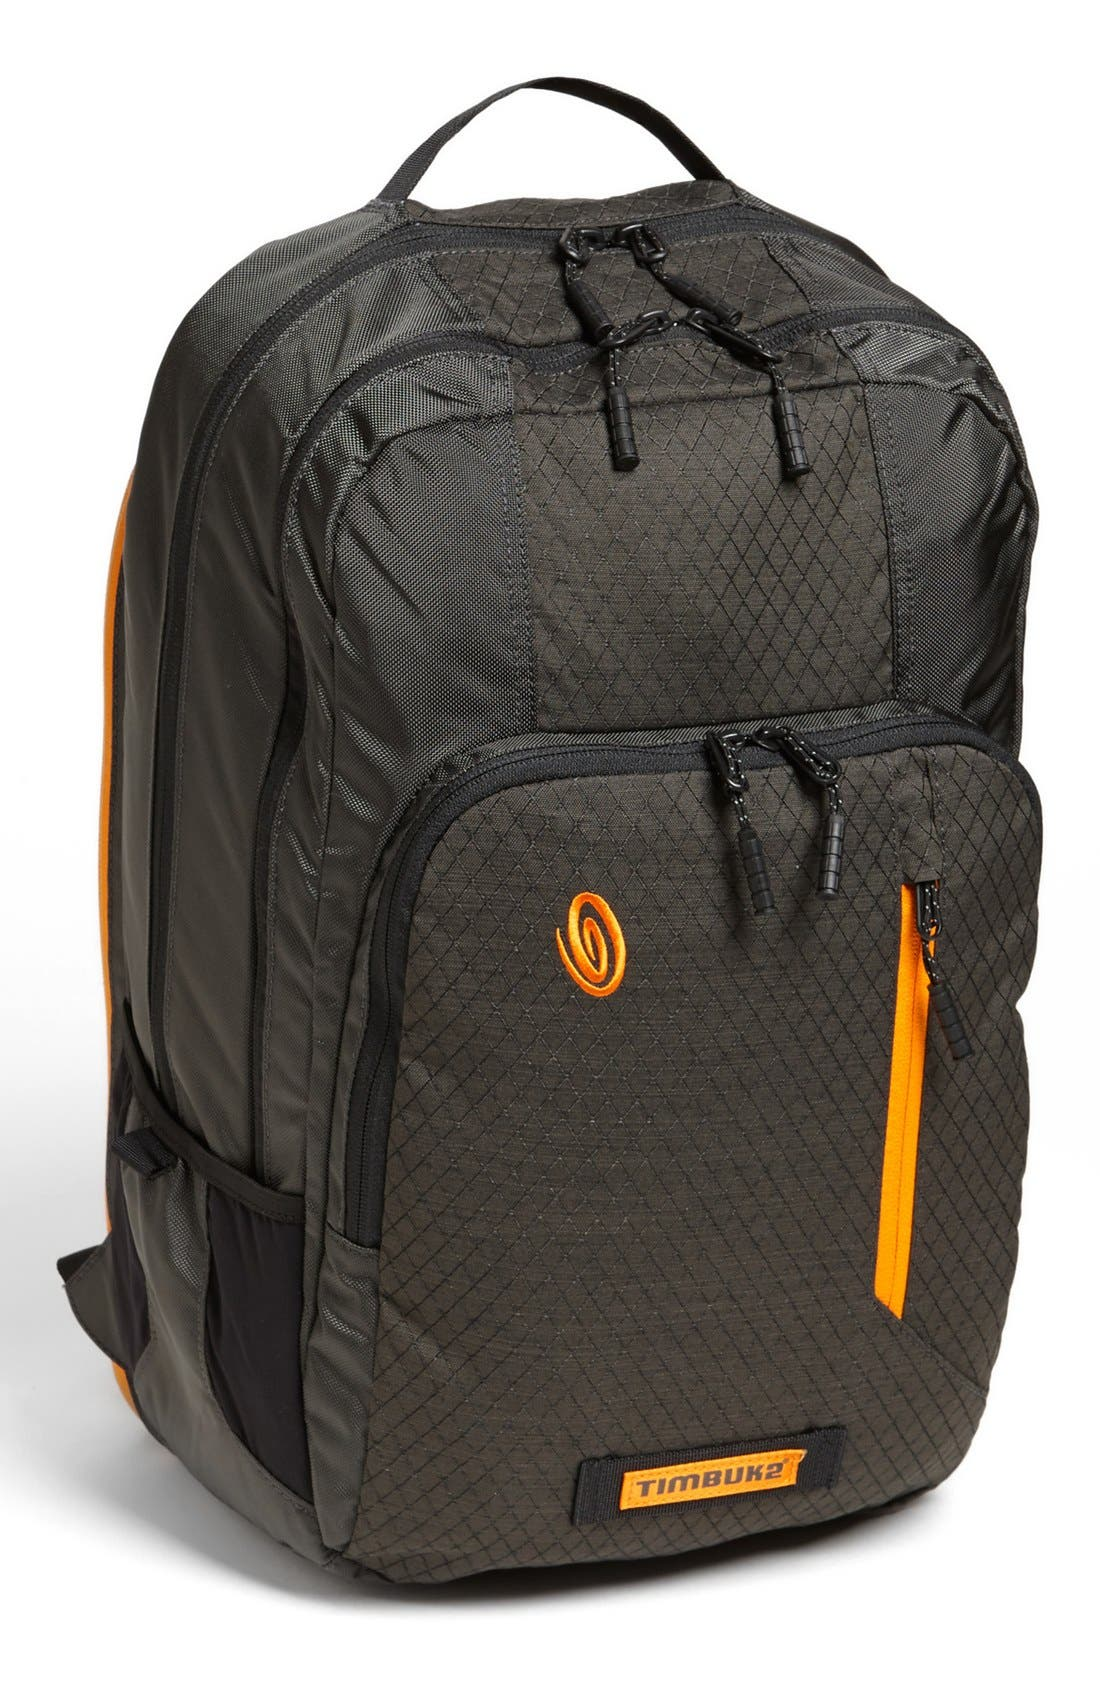 Alternate Image 1 Selected - Timbuk2 'Uptown' Backpack